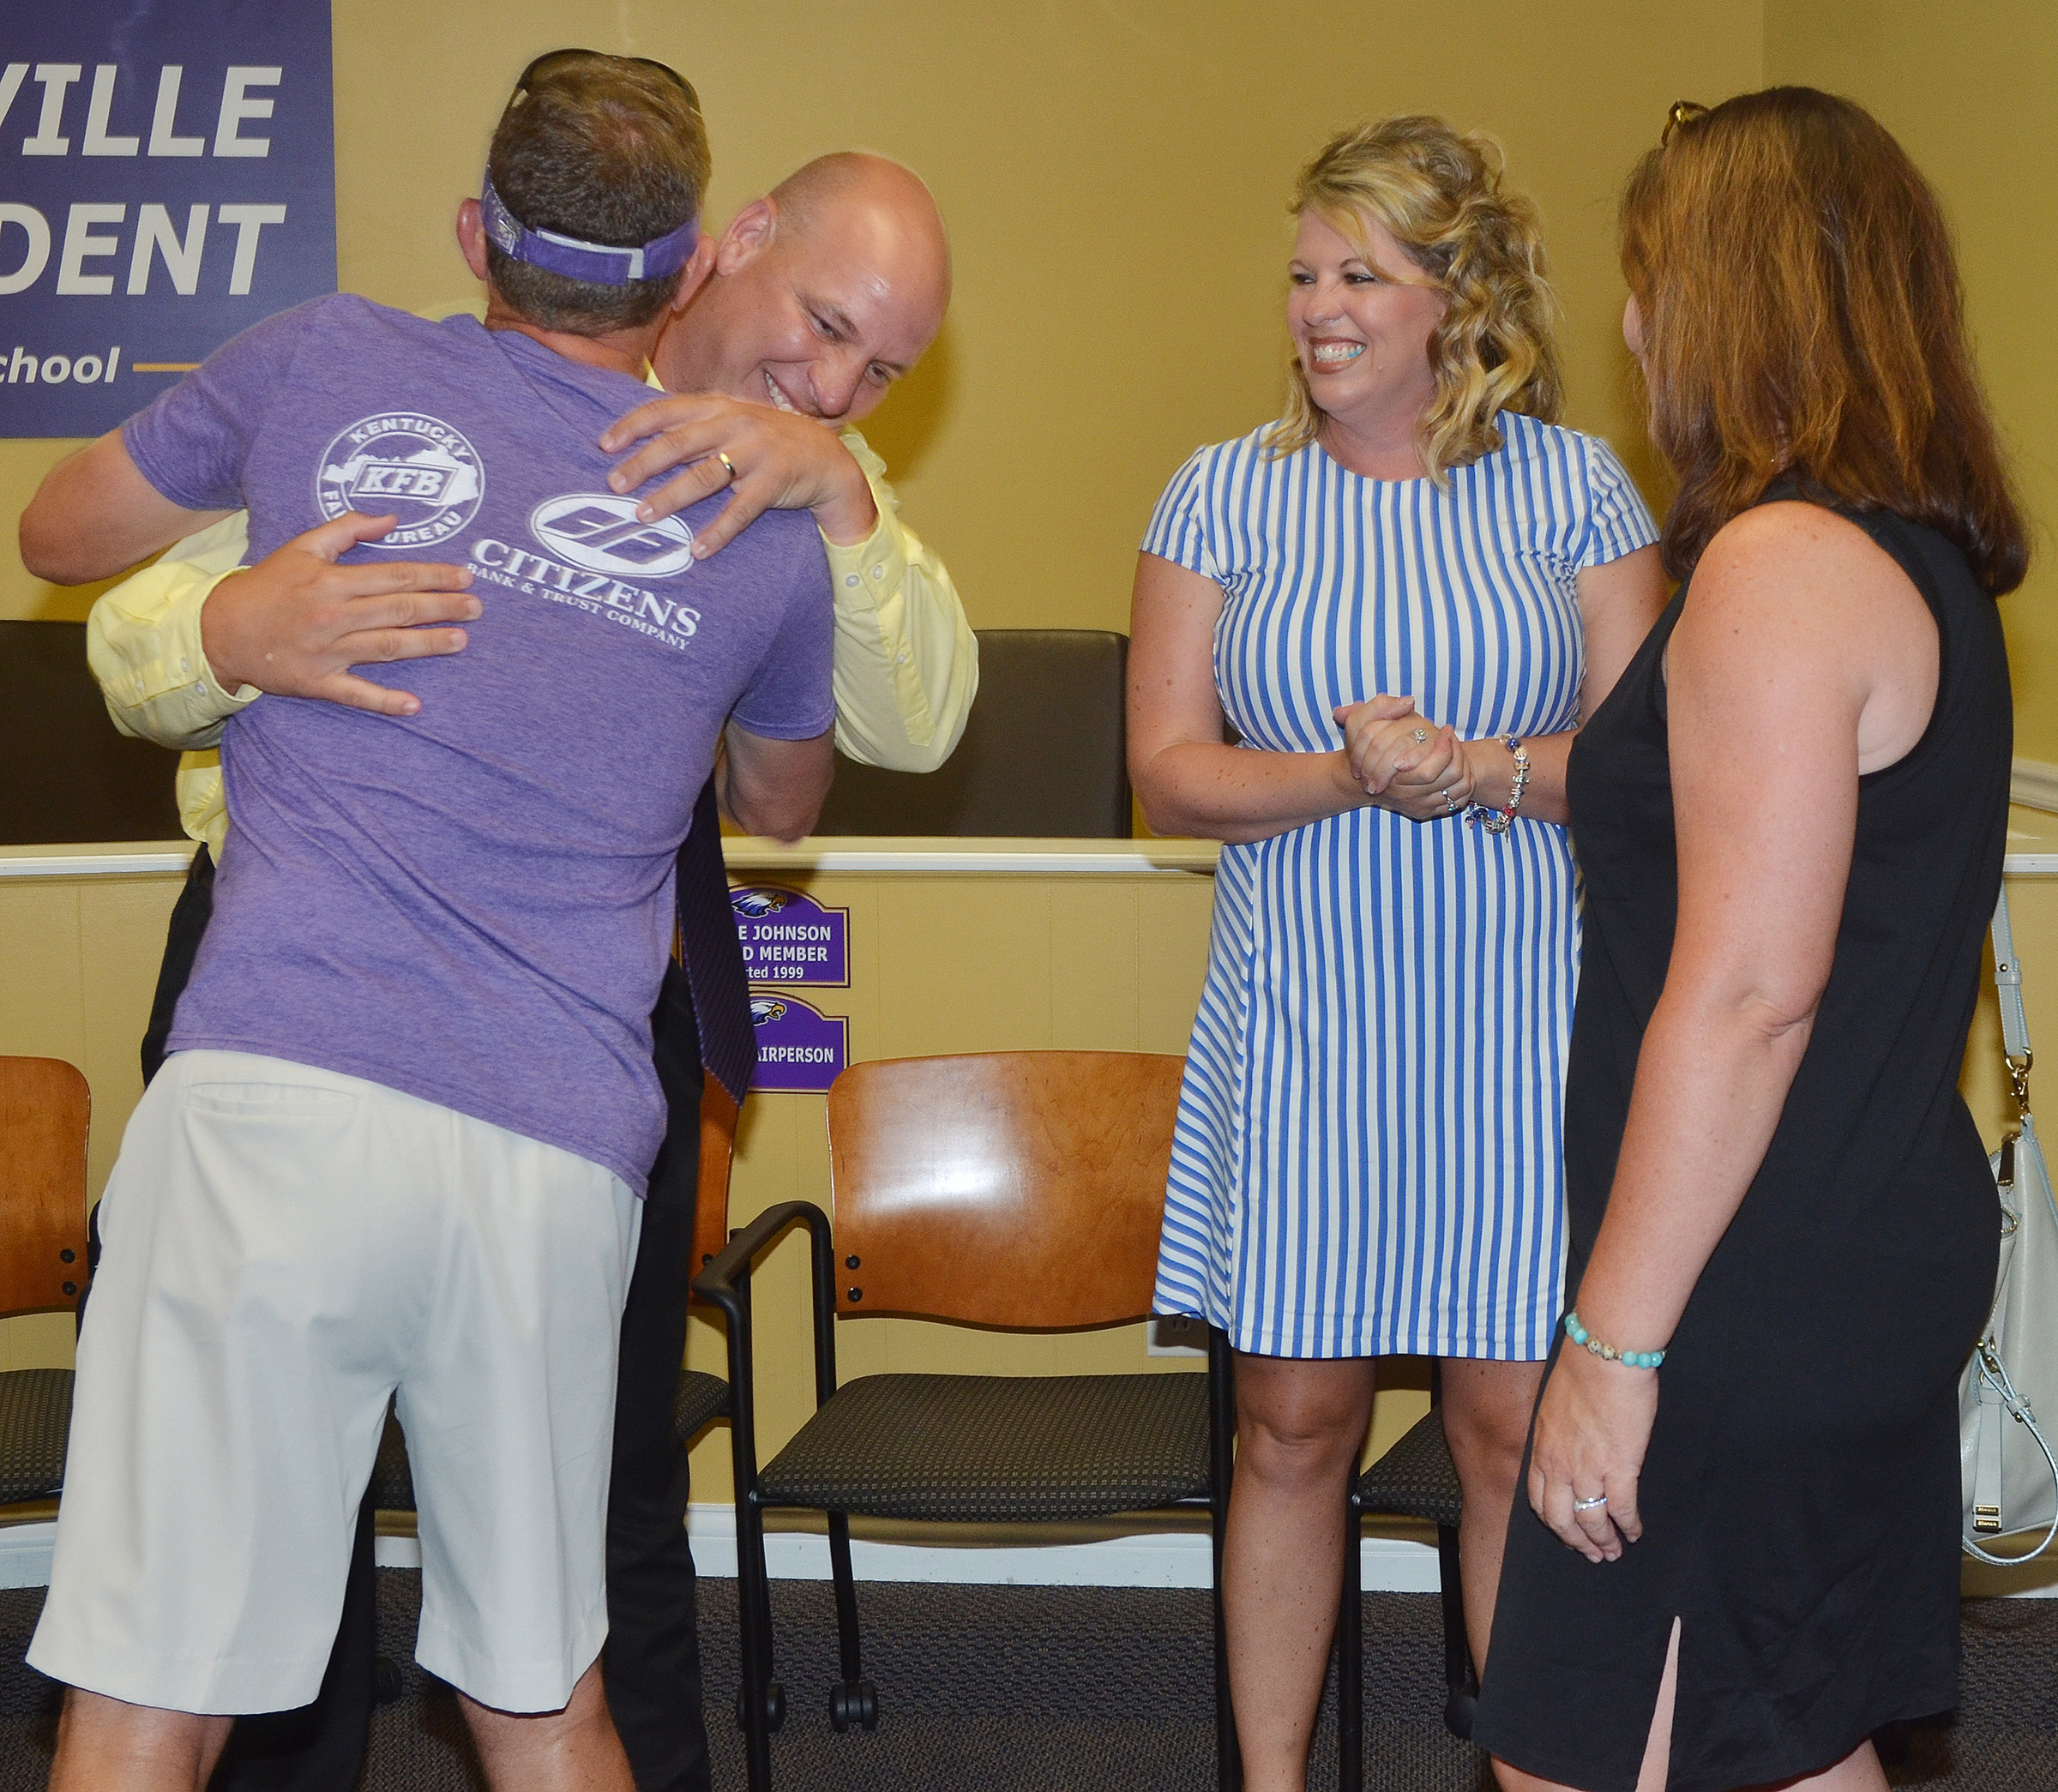 CHS Principal David Petett gets a hug from Herb Wiseman, who is a virtual learning teacher at CHS. At right, CHS teacher Susan Dabney congratulates CES Principal Elisha Rhodes.